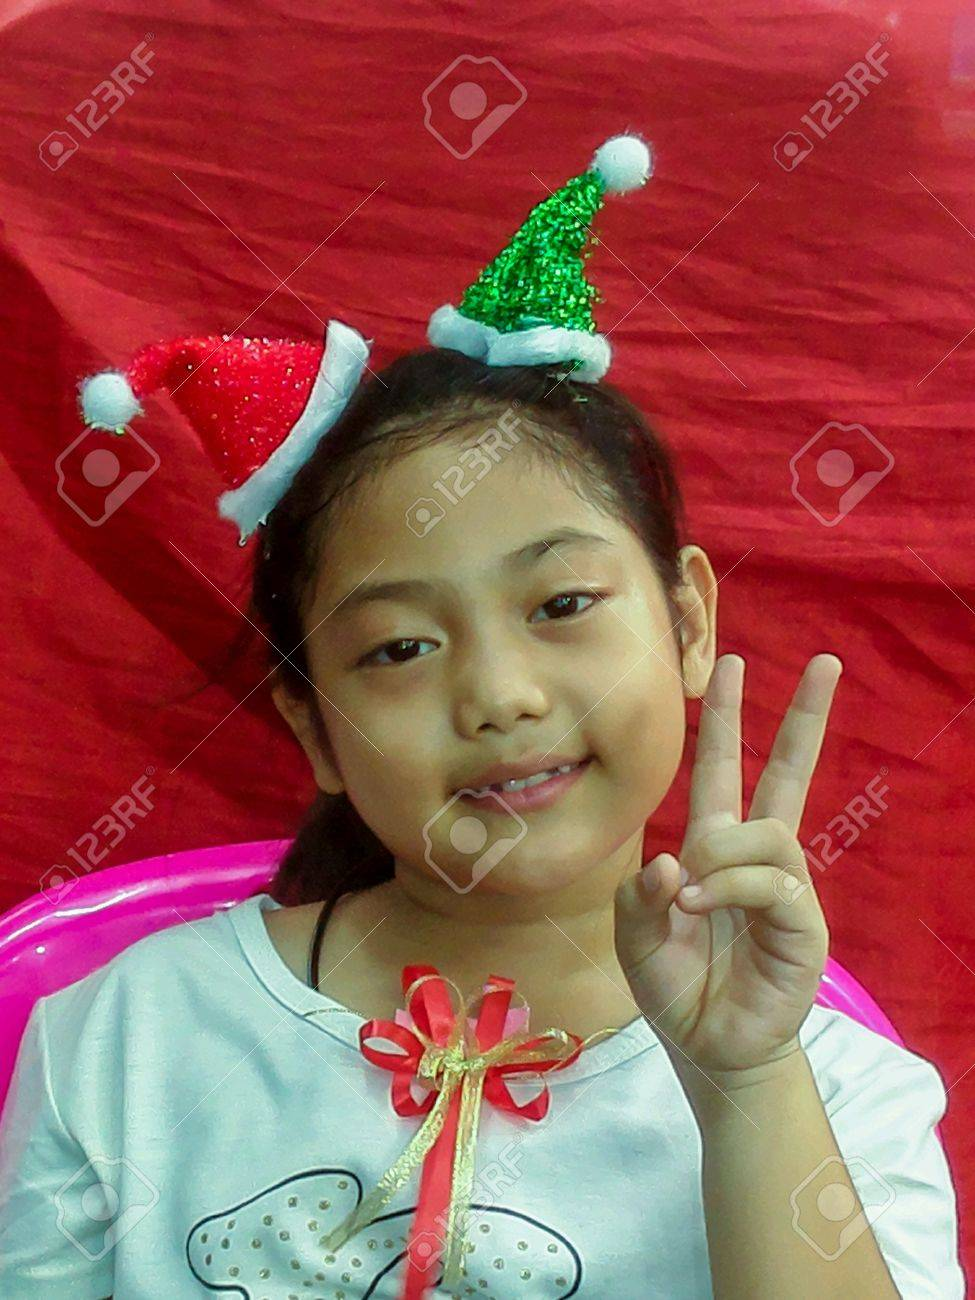 Little Video Clip Congratulations And Greeting Friends On Christmas